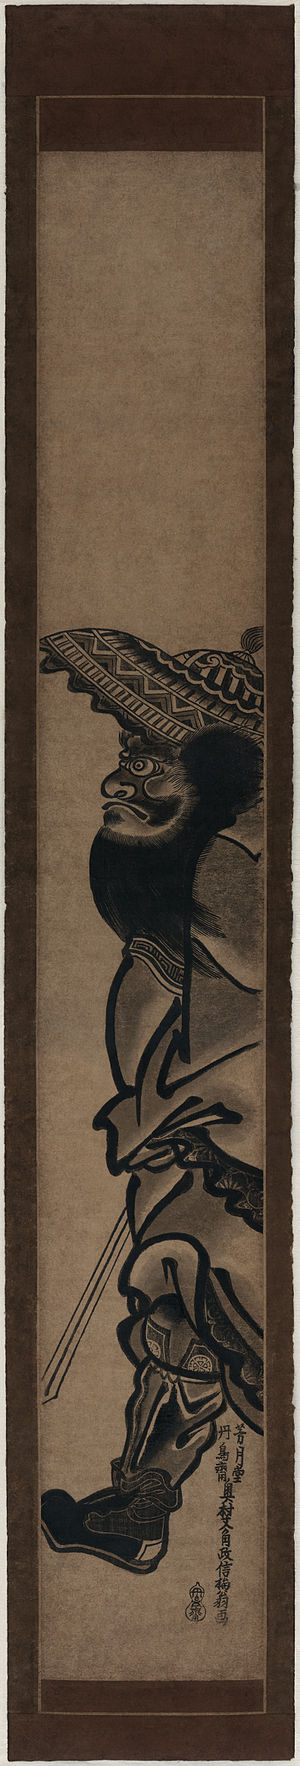 "Woodblock printing in Japan - ""Shōki zu"" (Zhong Kui), by Okumura Masanobu, 1741–1751.  An example of pillar print format, 69.2 x 10.1 cm."